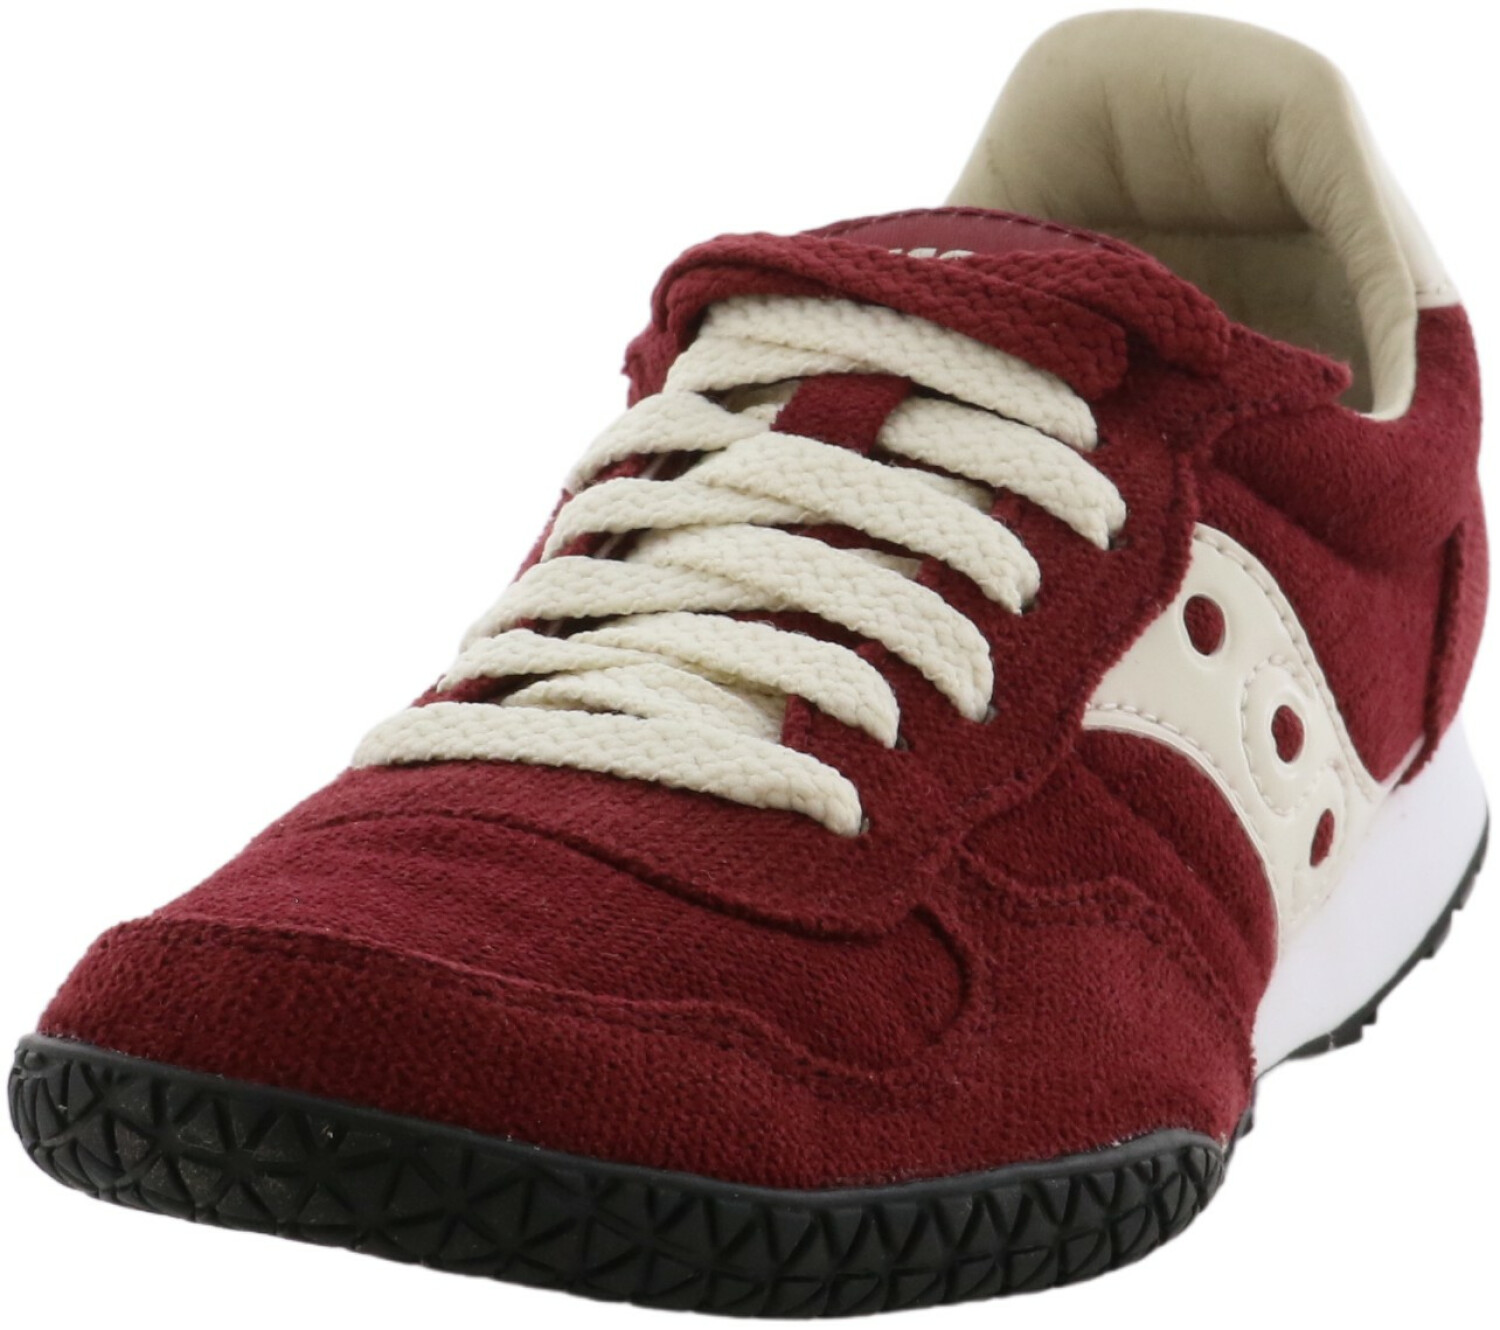 Saucony Women's Bullet Maroon Low Top Leather Sneaker - 5.5M